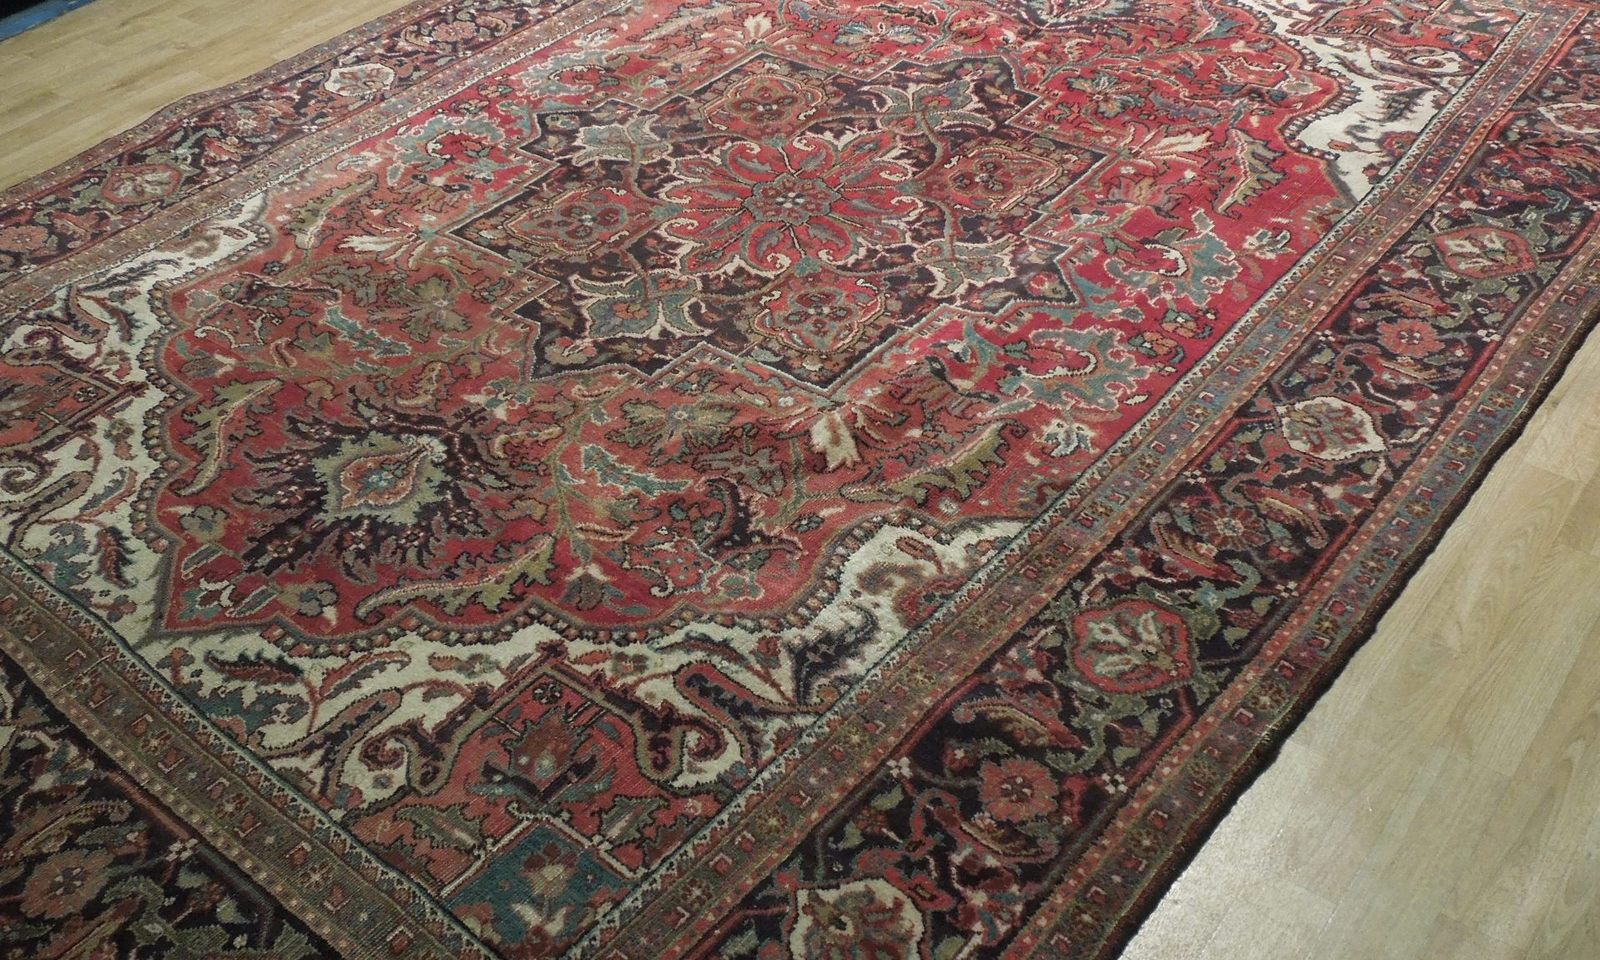 Semi-Antique Durable Red Heriz Persian Wool Hand-Knotted Rug 7' x 11' Rug